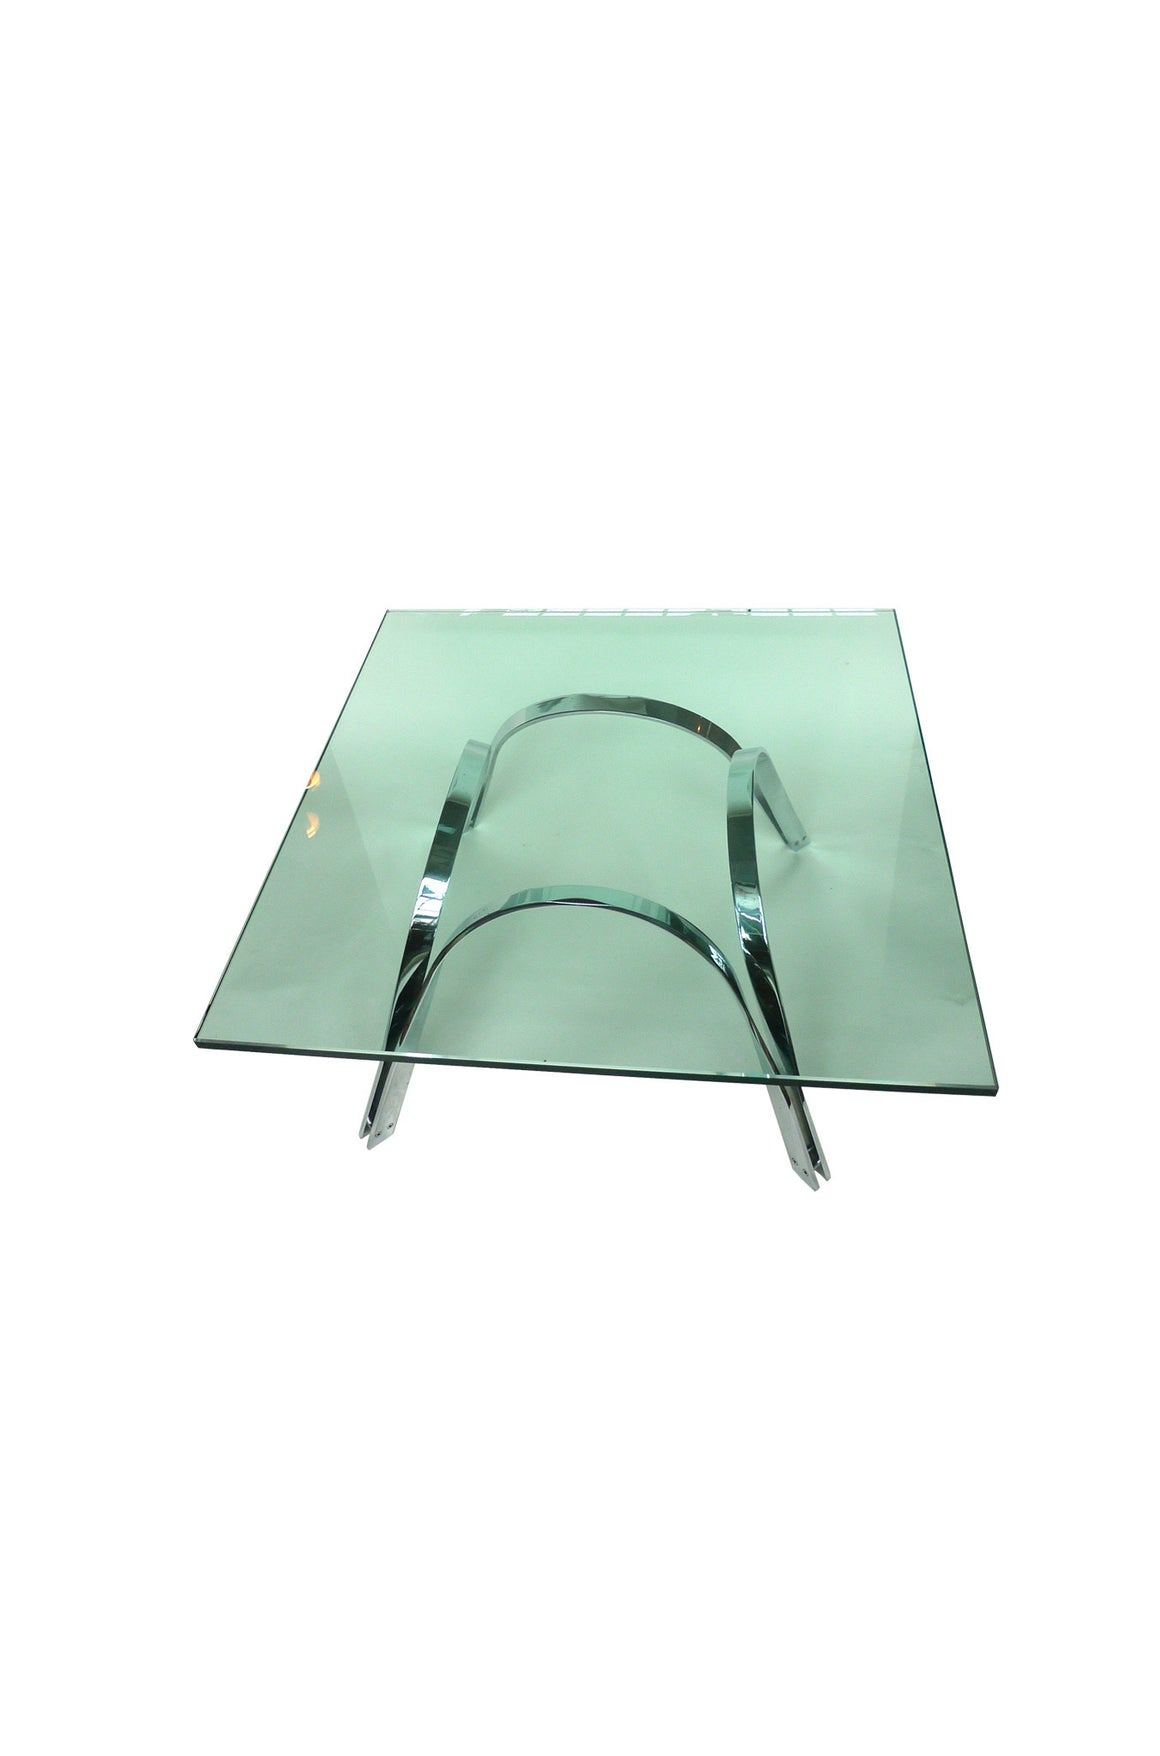 Roger Sprunger Glass & Chrome Coffee Table